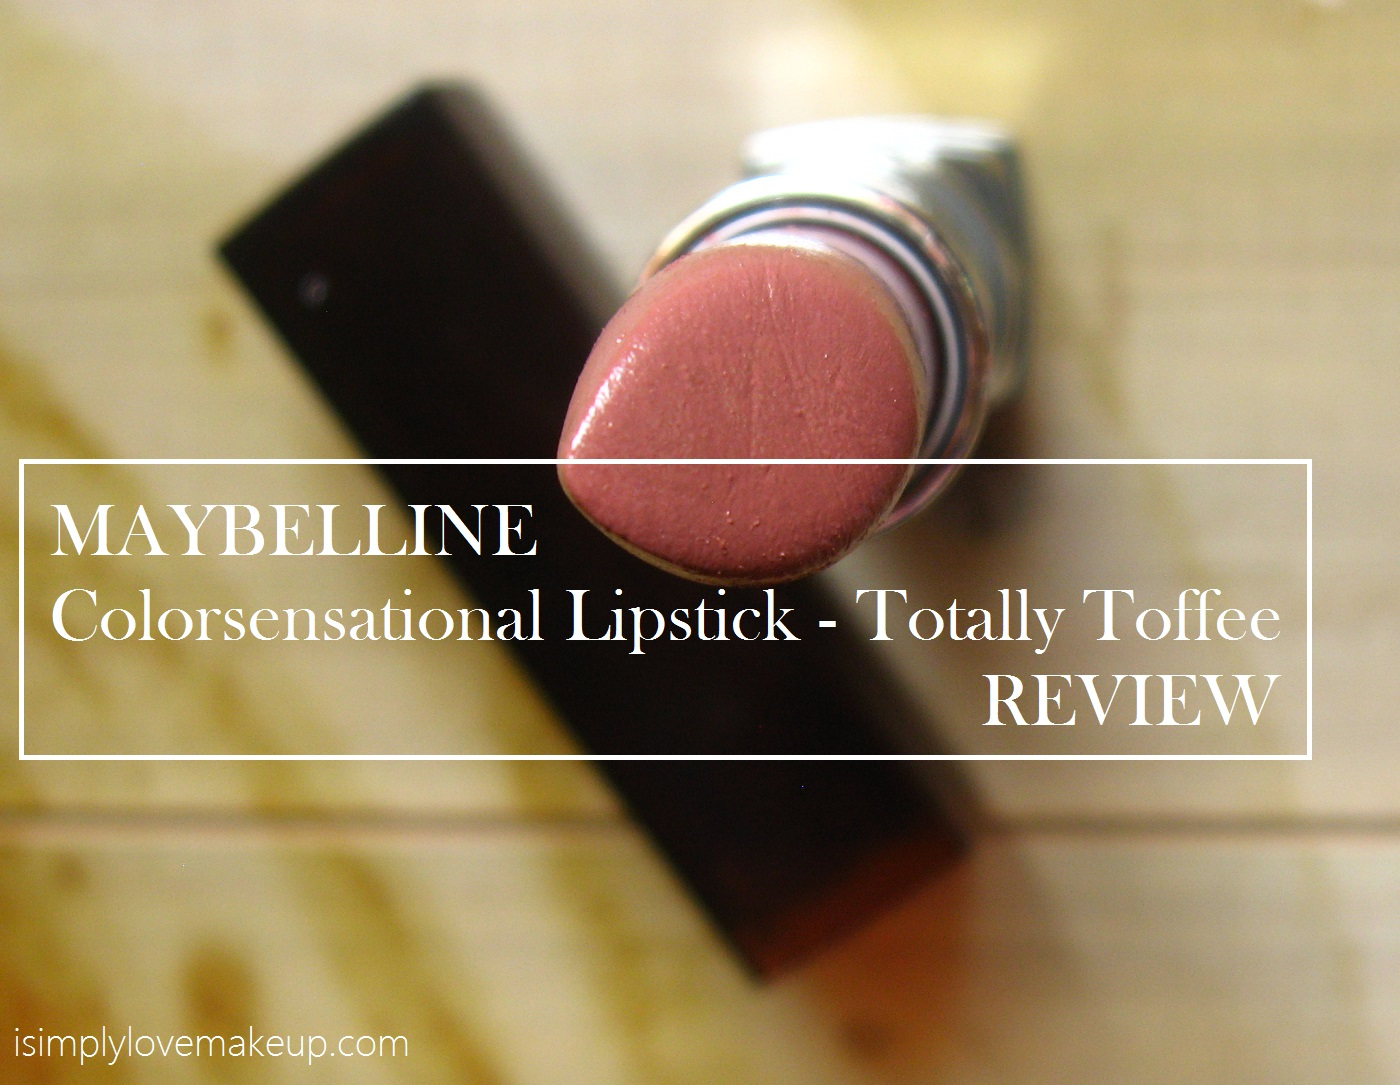 Maybelline Color Sensational Lipstick in Totally Toffee